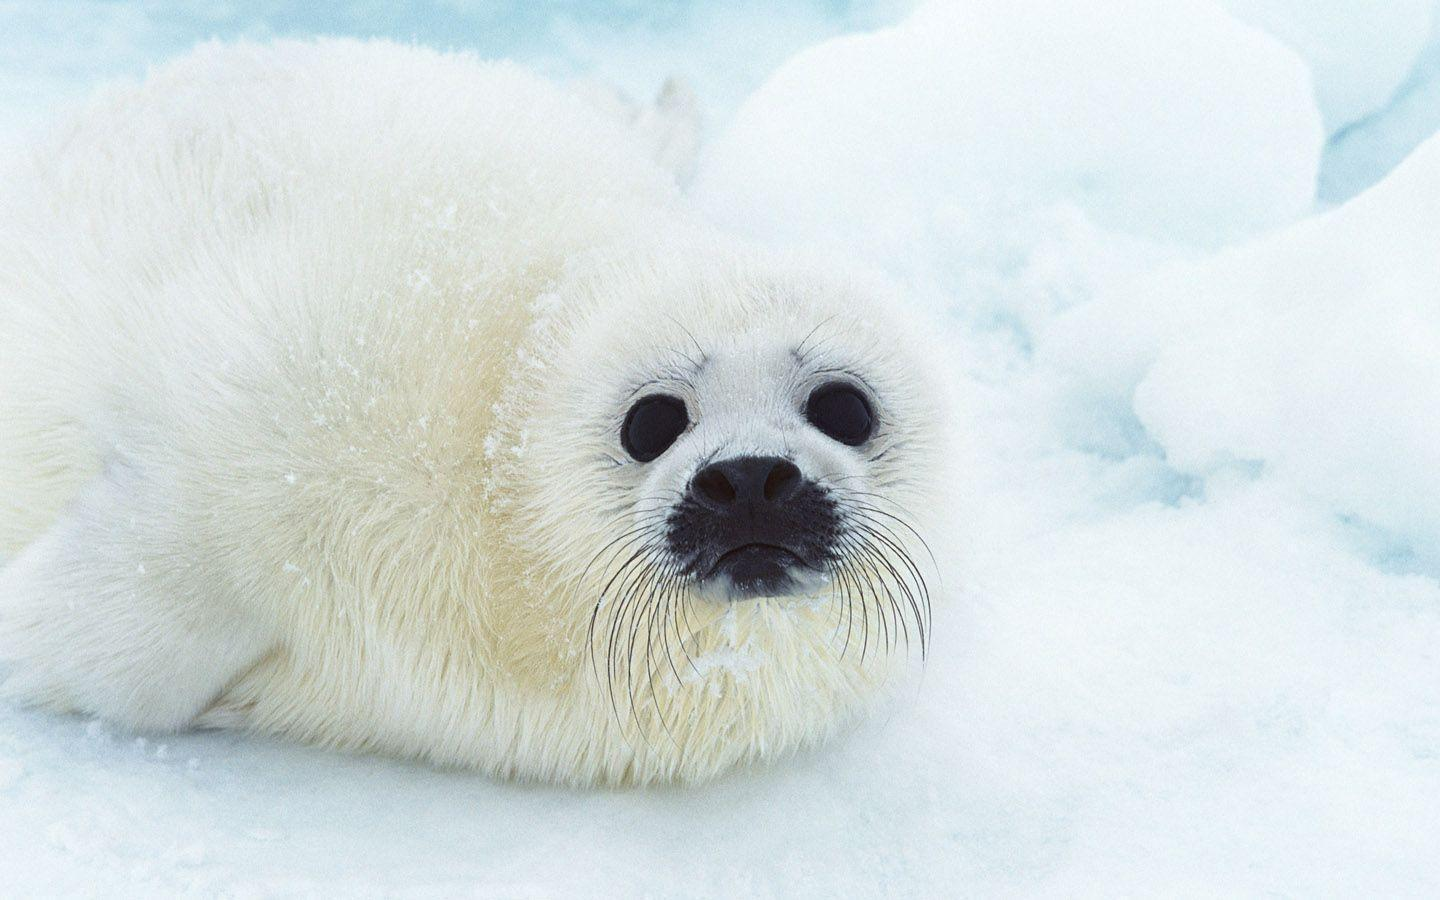 Cute Baby Seals 9361 Hd Wallpapers: Cute Baby Animal Wallpapers